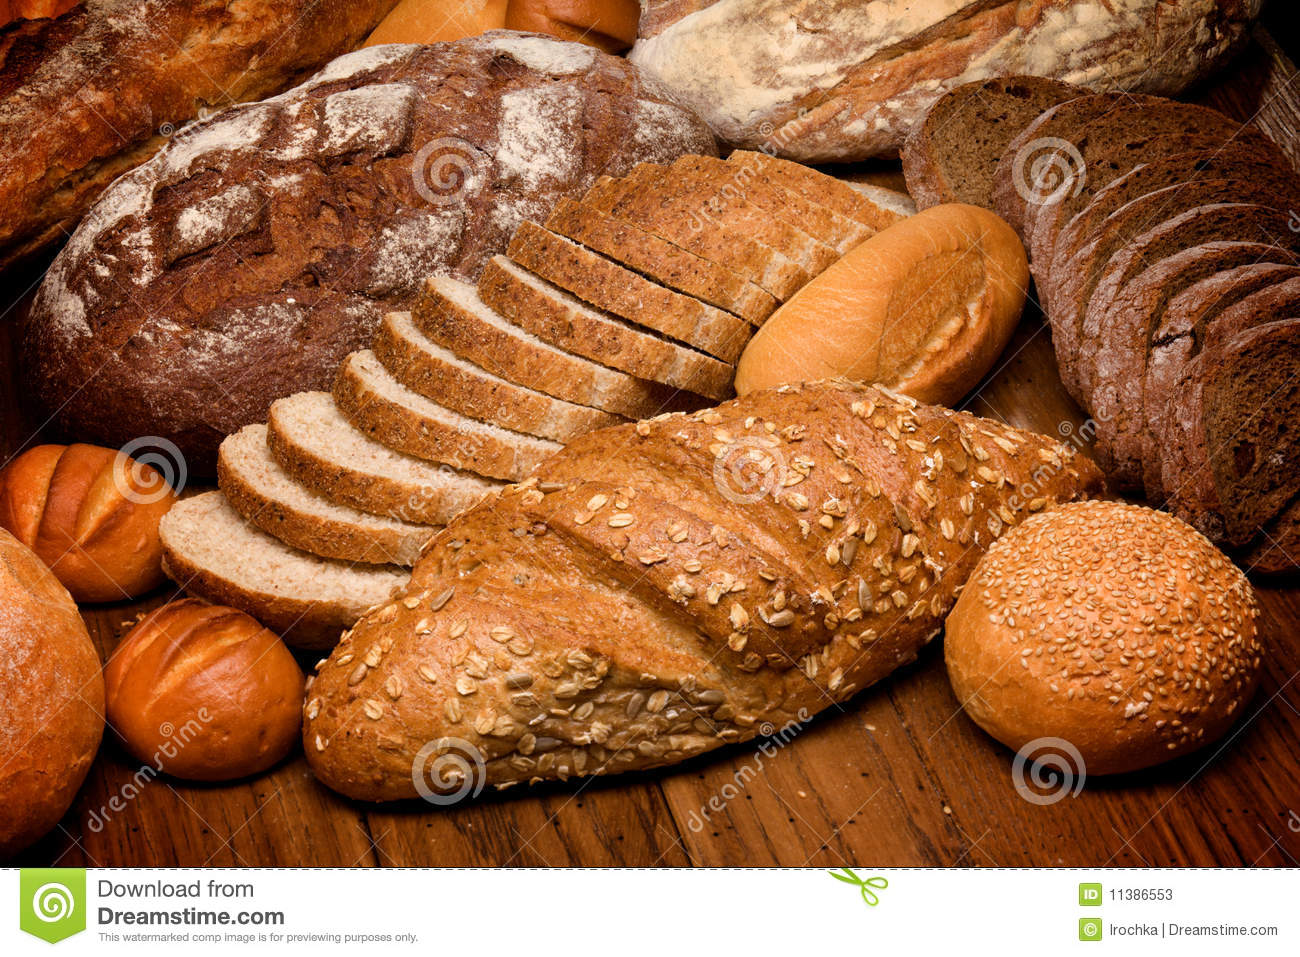 Bakery Wallpaper Hd Assortment Of Baked Bread Stock Image Image Of Cereal